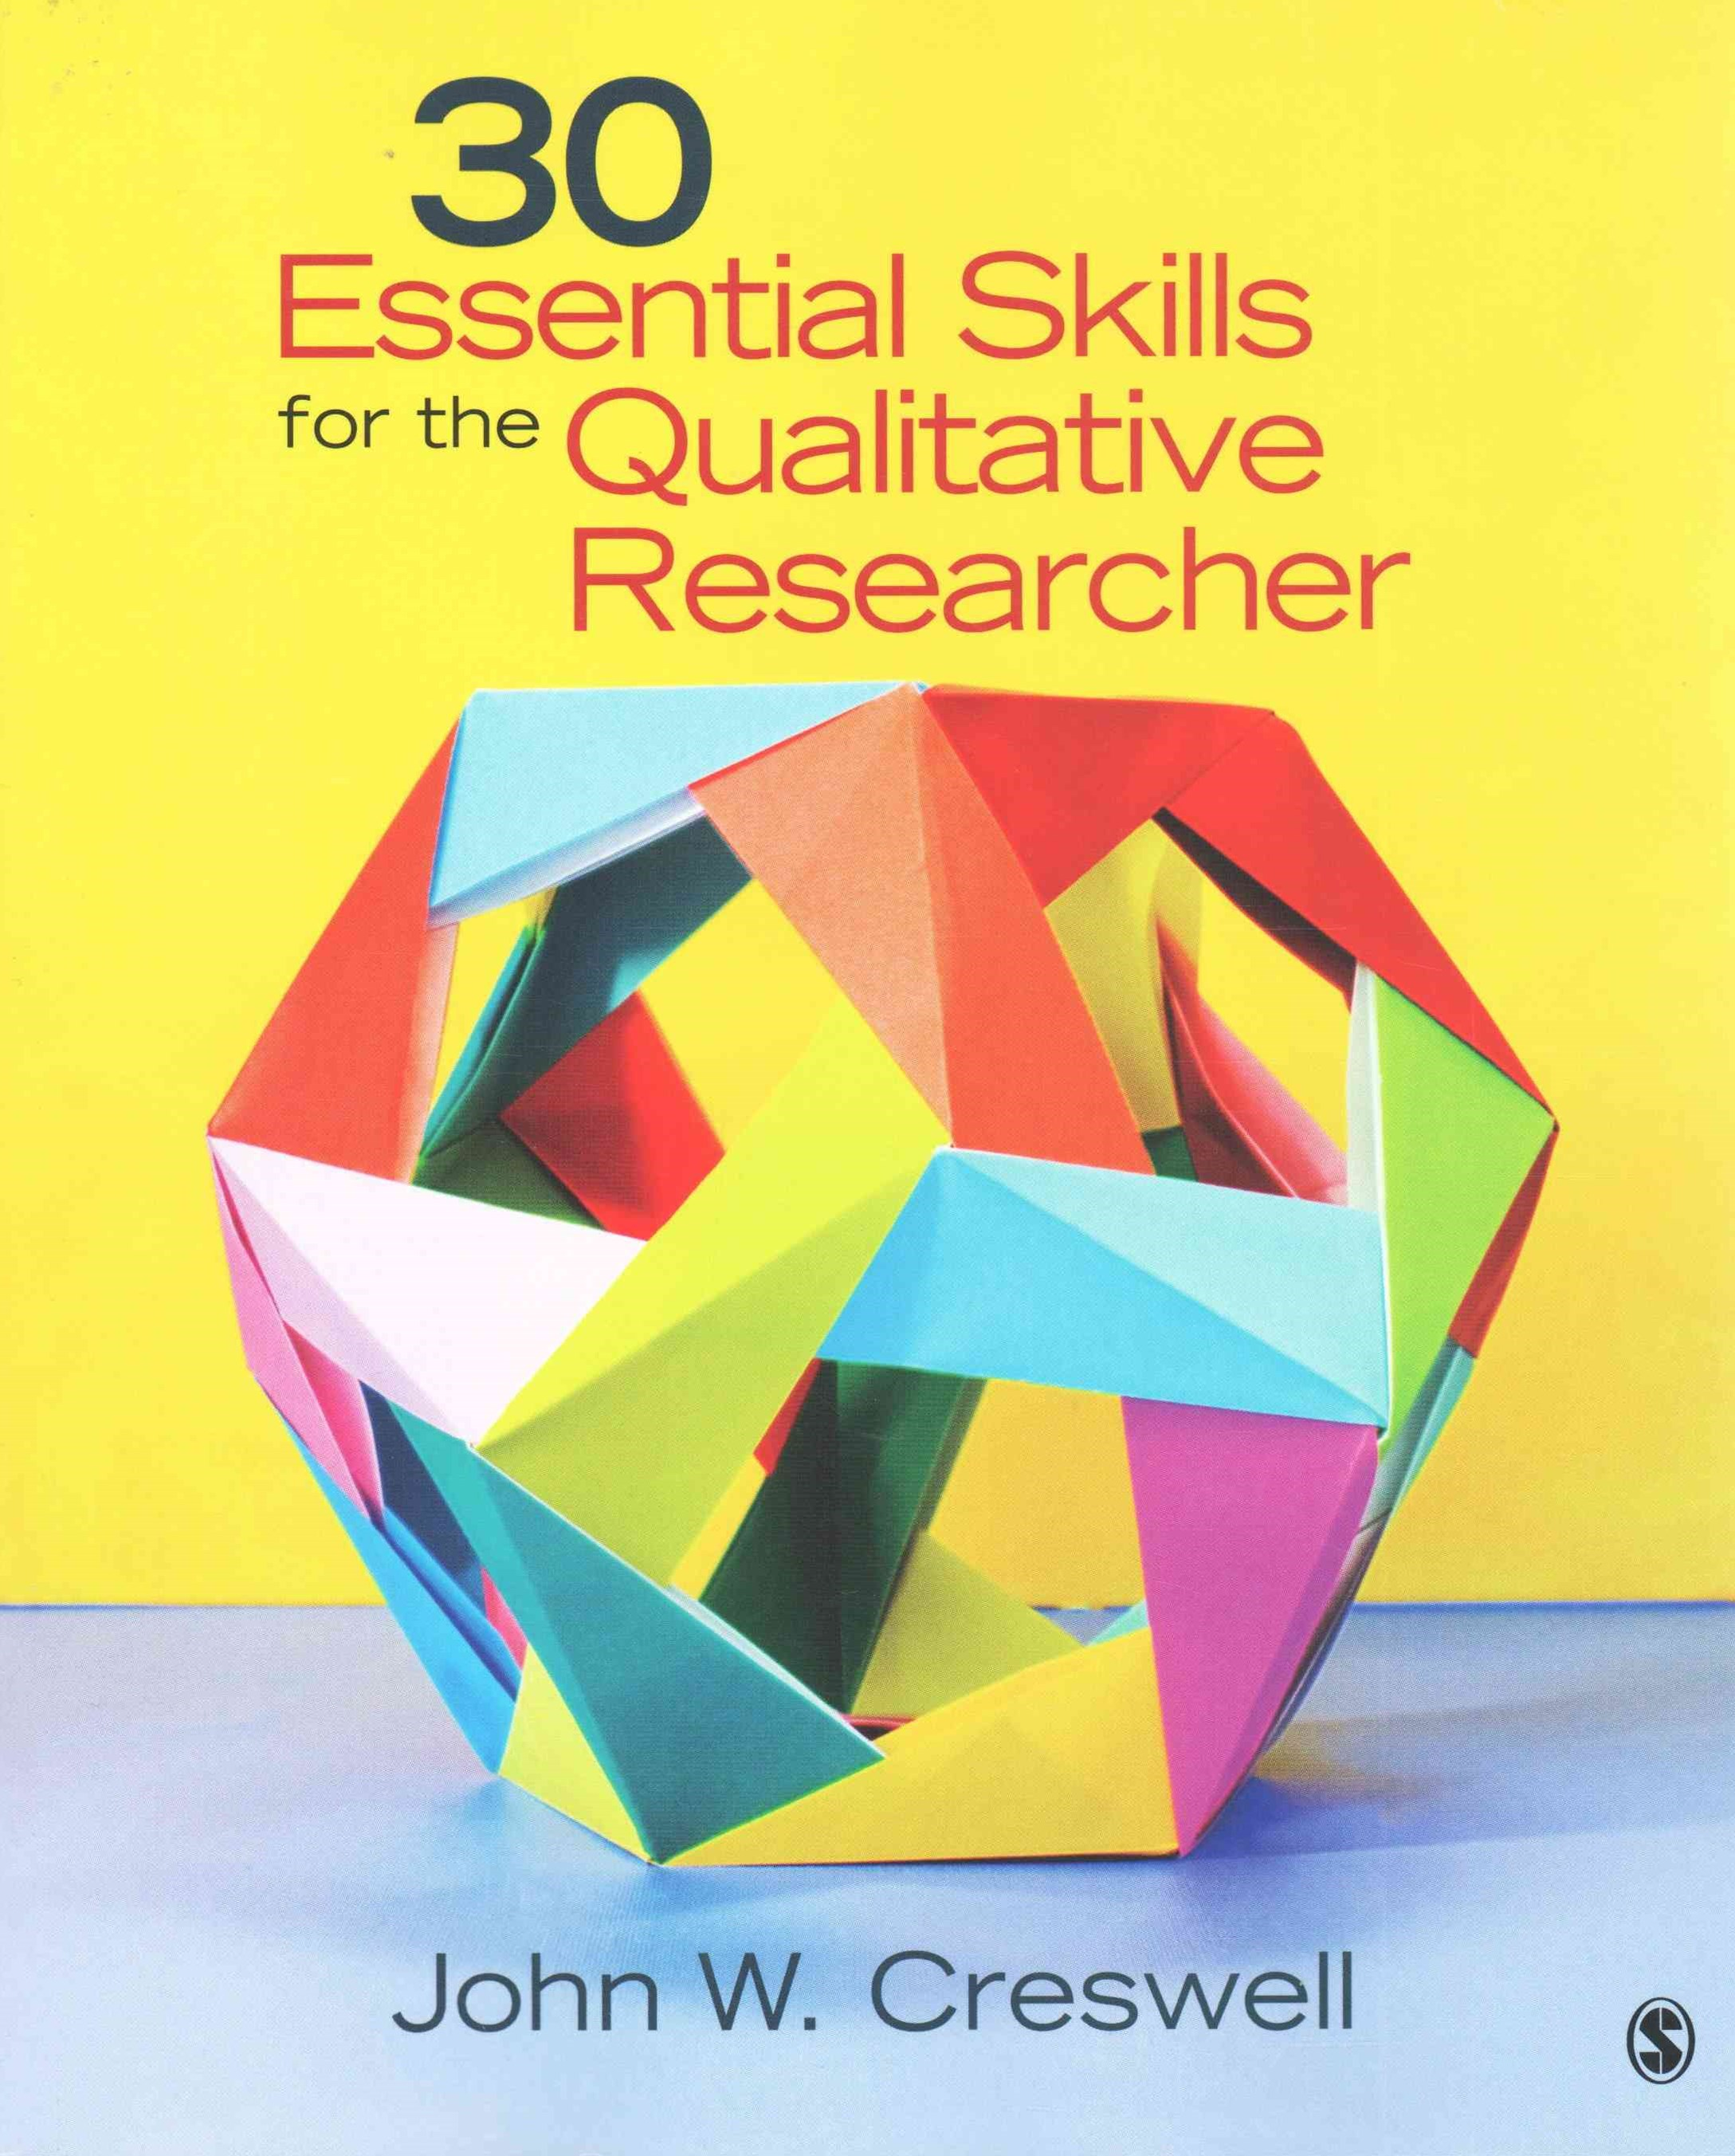 30 Essential Skills for the Qualitative Researcher